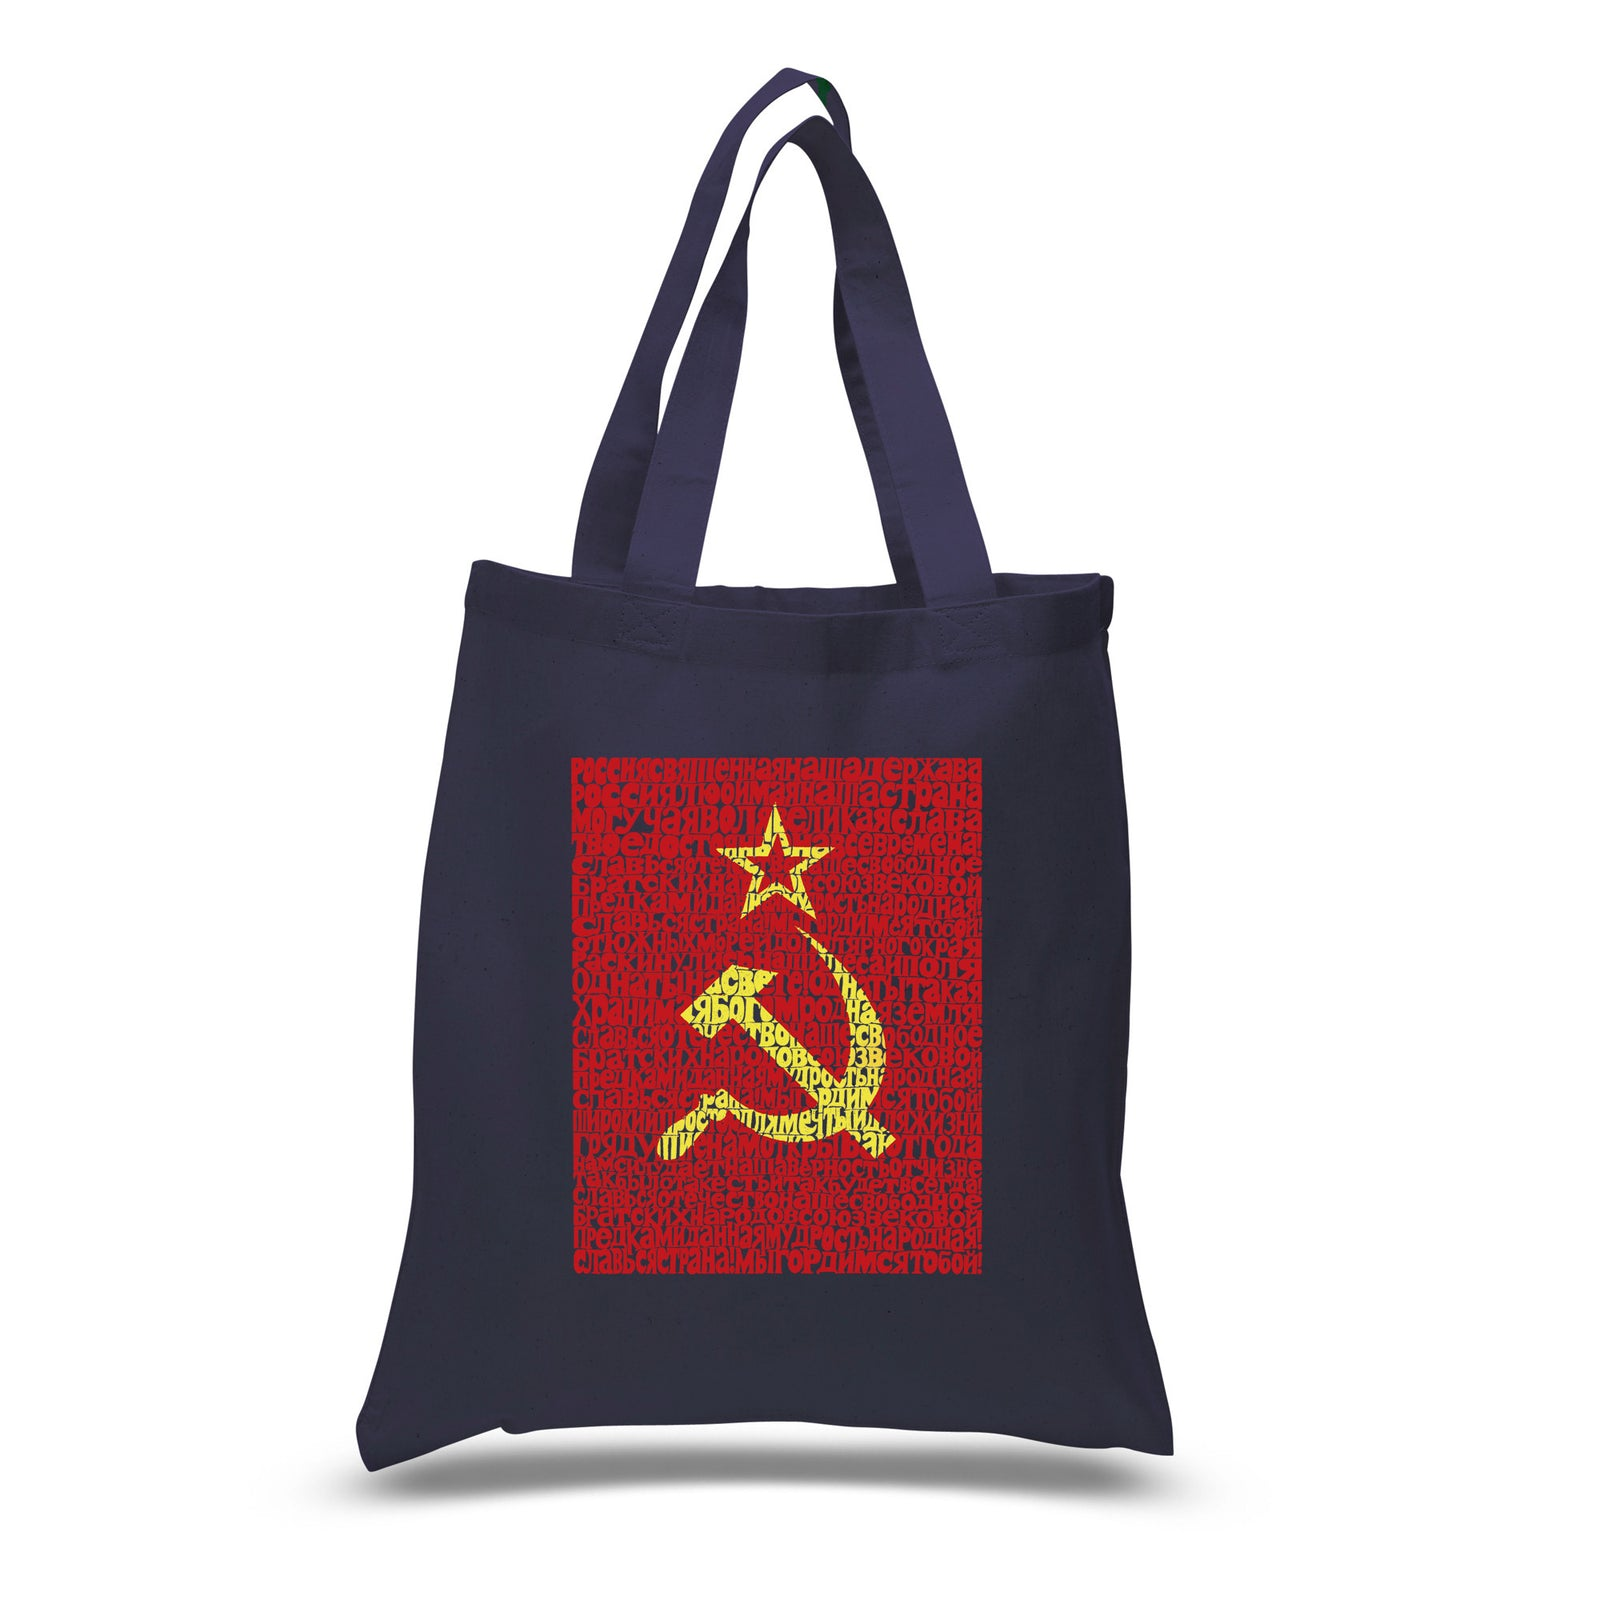 Small Tote Bag - Lyrics to the Soviet National Anthem